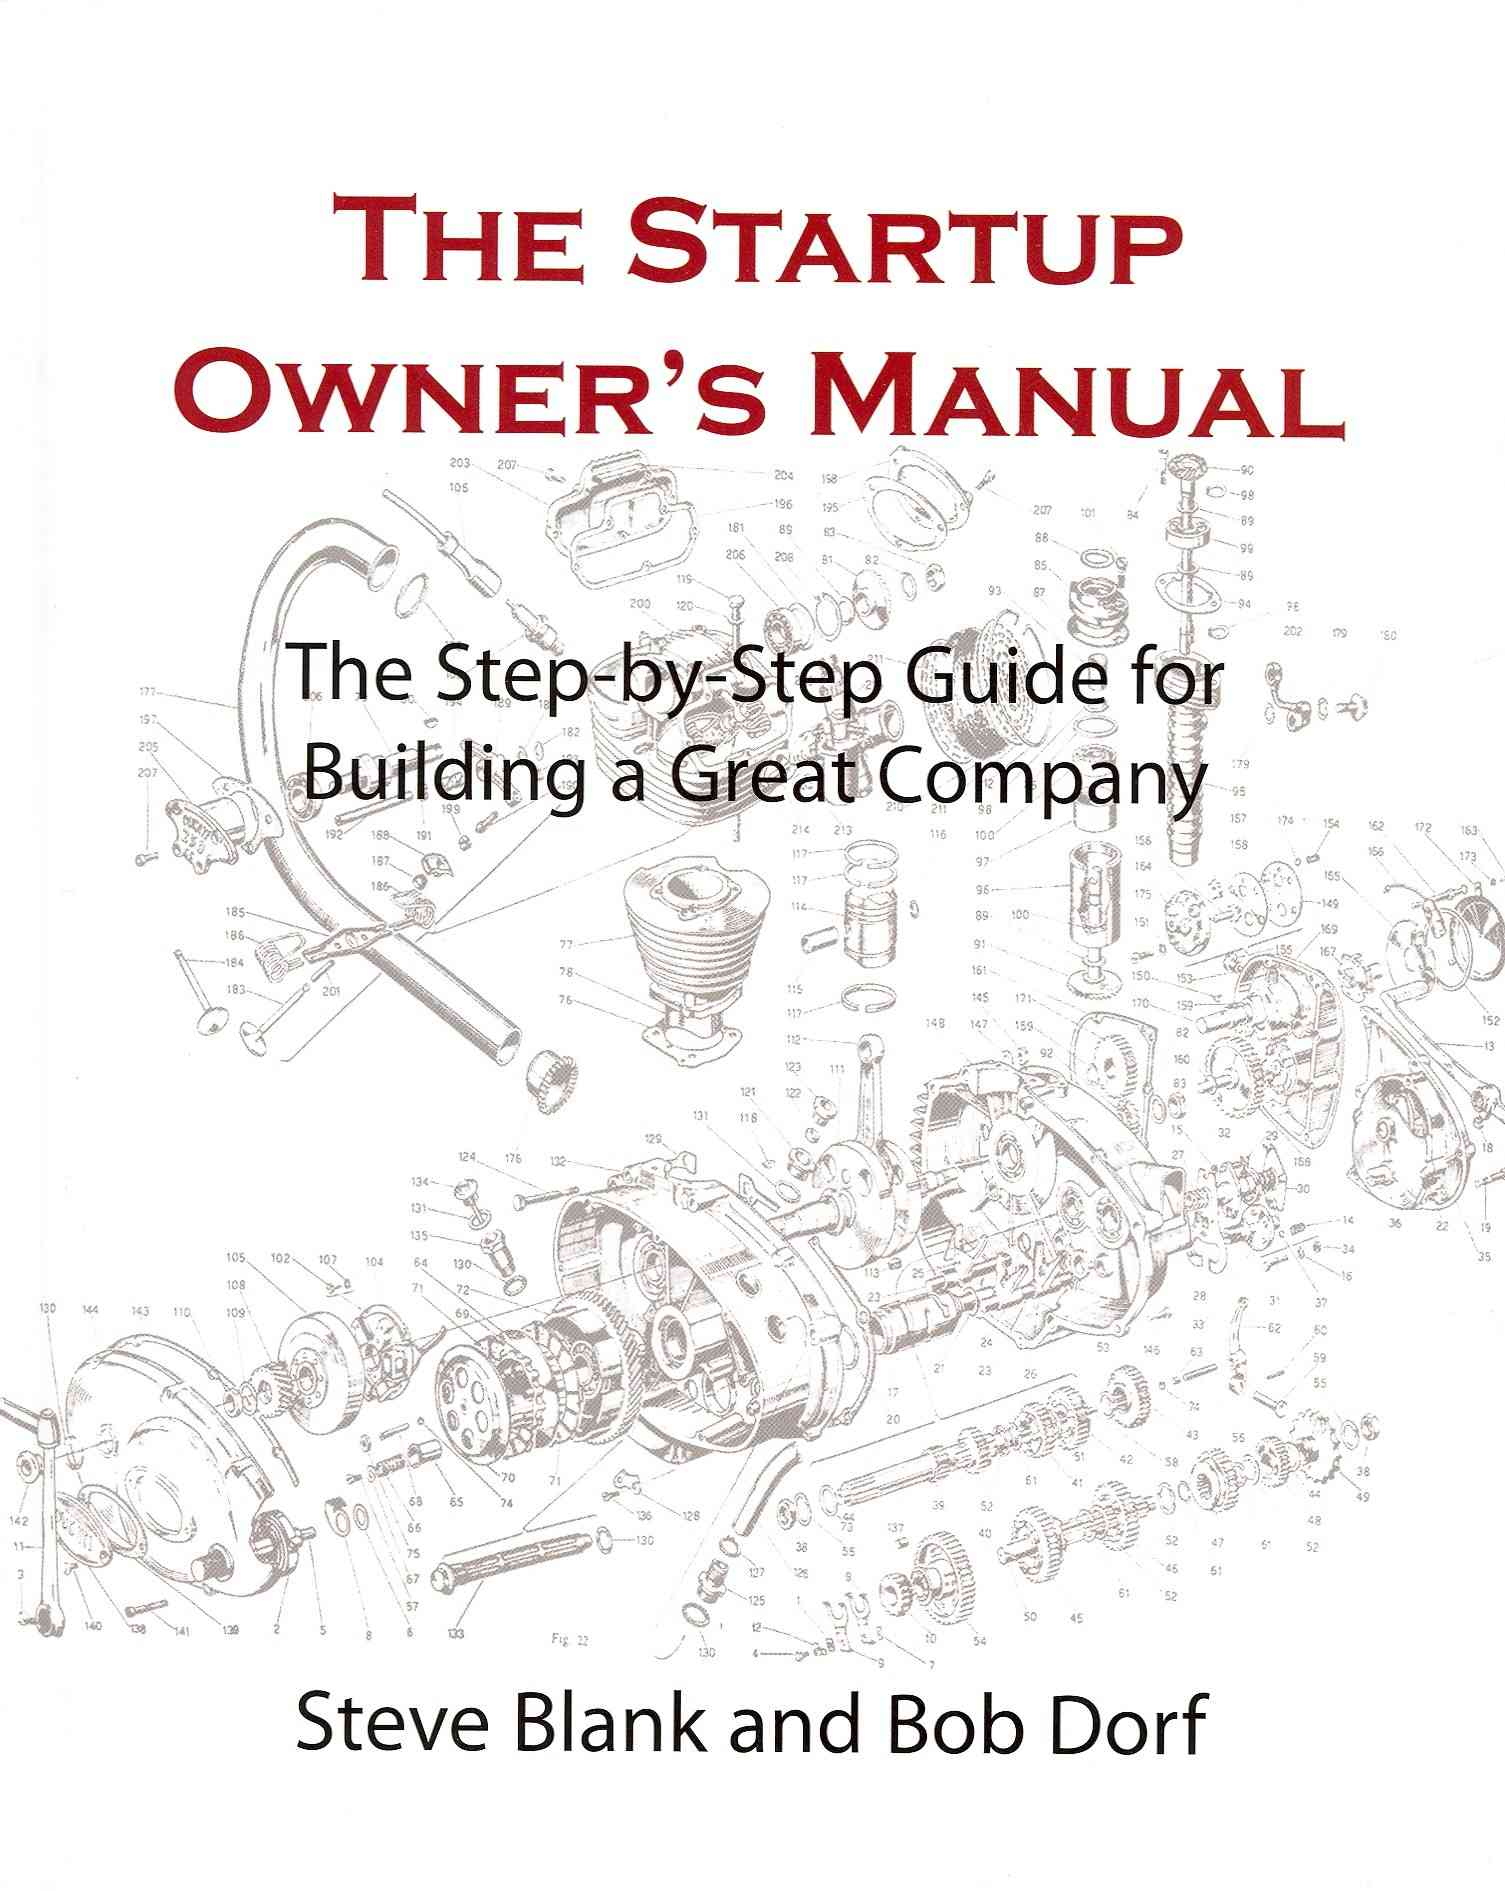 The Startup Owner's Manual: The Step-by-Step Guide for Building a Great Company (Hardcover)